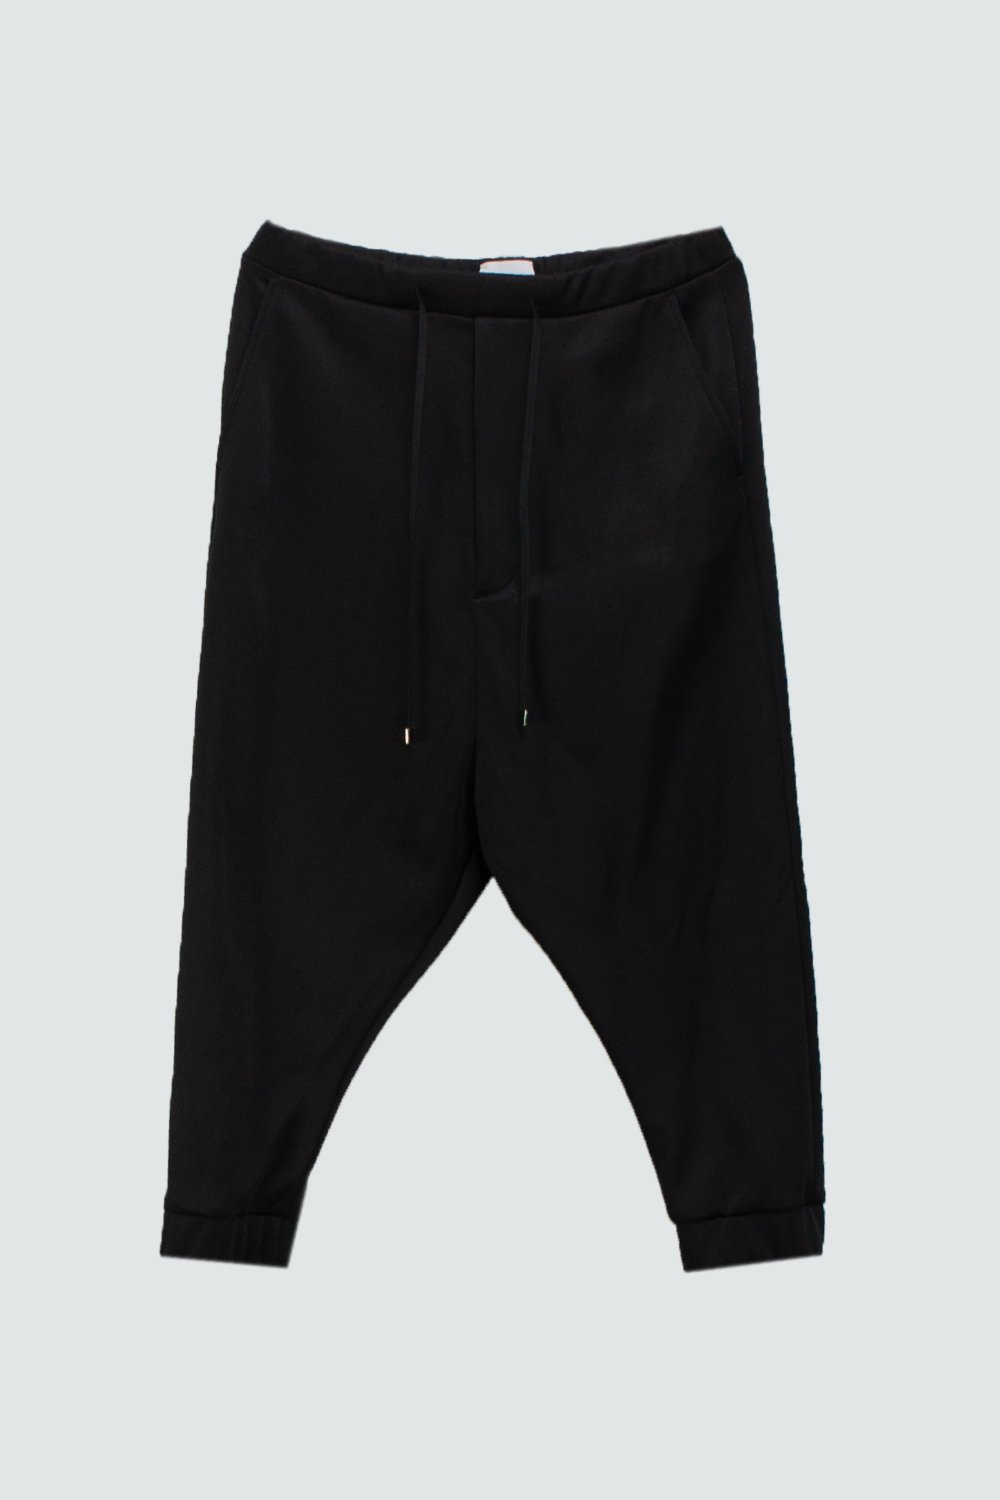 <img class='new_mark_img1' src='https://img.shop-pro.jp/img/new/icons8.gif' style='border:none;display:inline;margin:0px;padding:0px;width:auto;' />SWEAT  SARROUEL PANTS BLACK